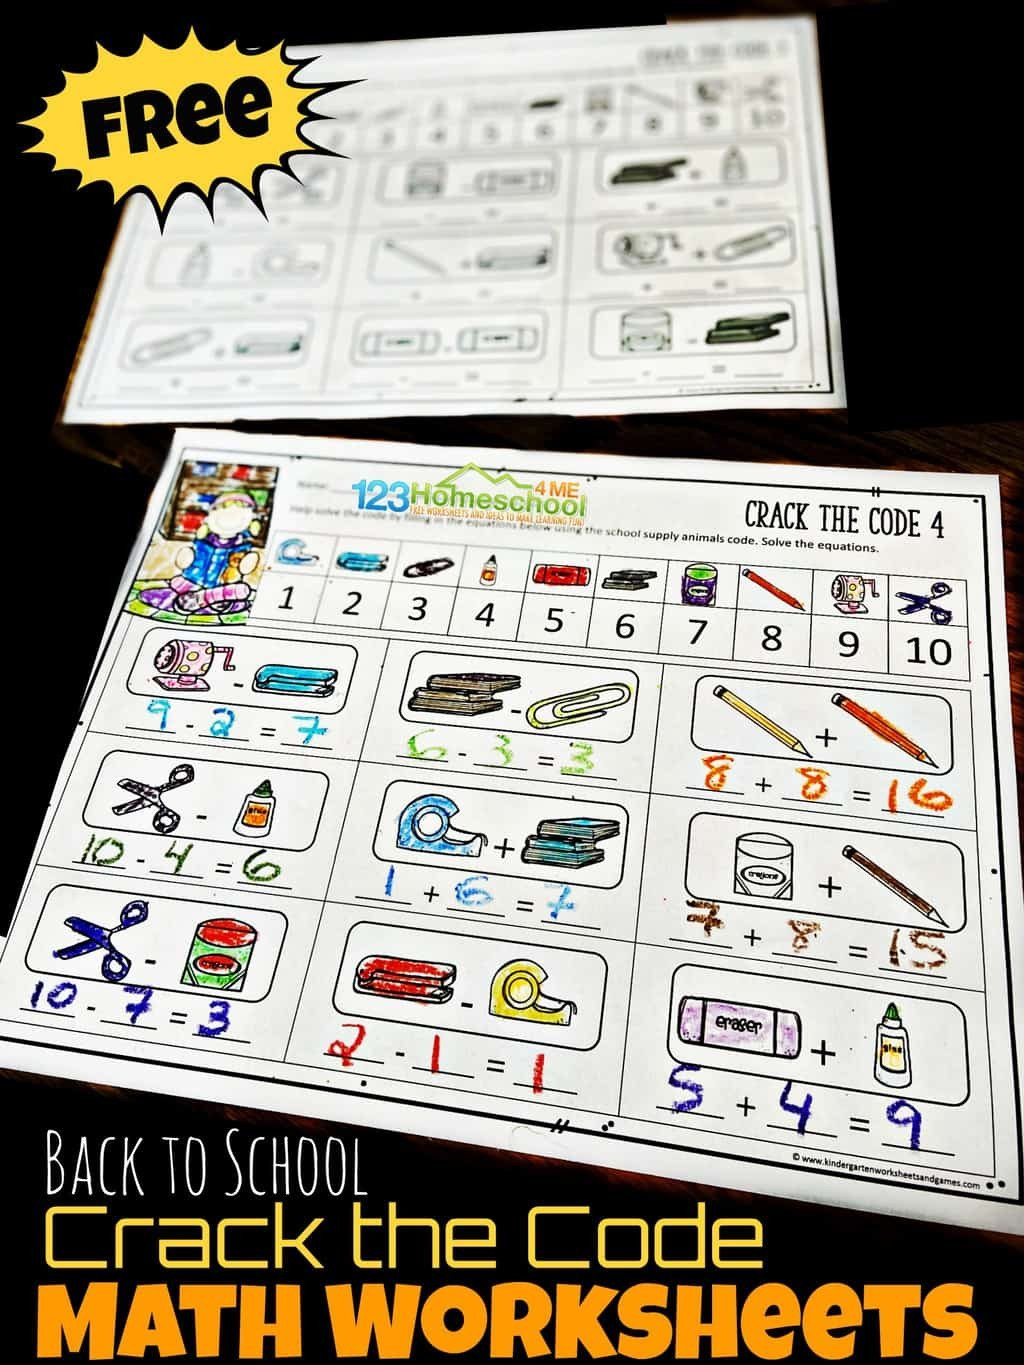 Cracking the Code Math Worksheets Free Back to School Crack the Code Worksheets